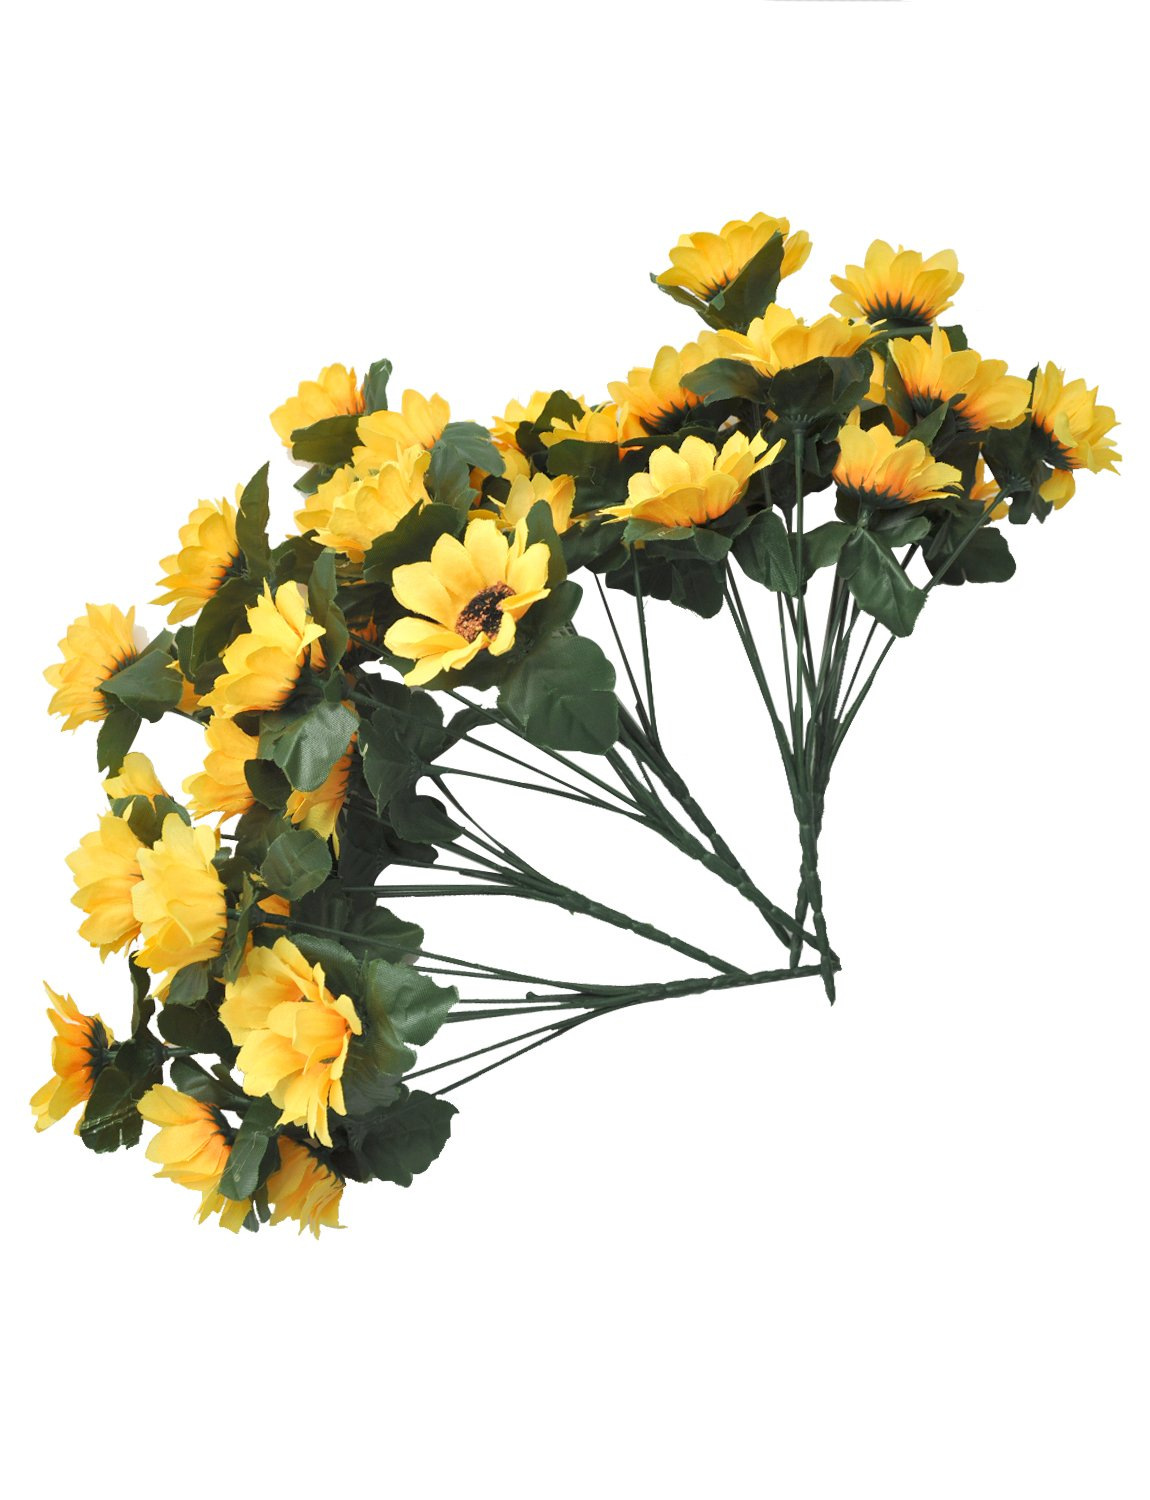 6 Bunches Per Pack with 7 Flowers Per Bunch BTSD-home Artificial Sunflowers Bouquet for Home Decoration Wedding Party Decor Silk Flower